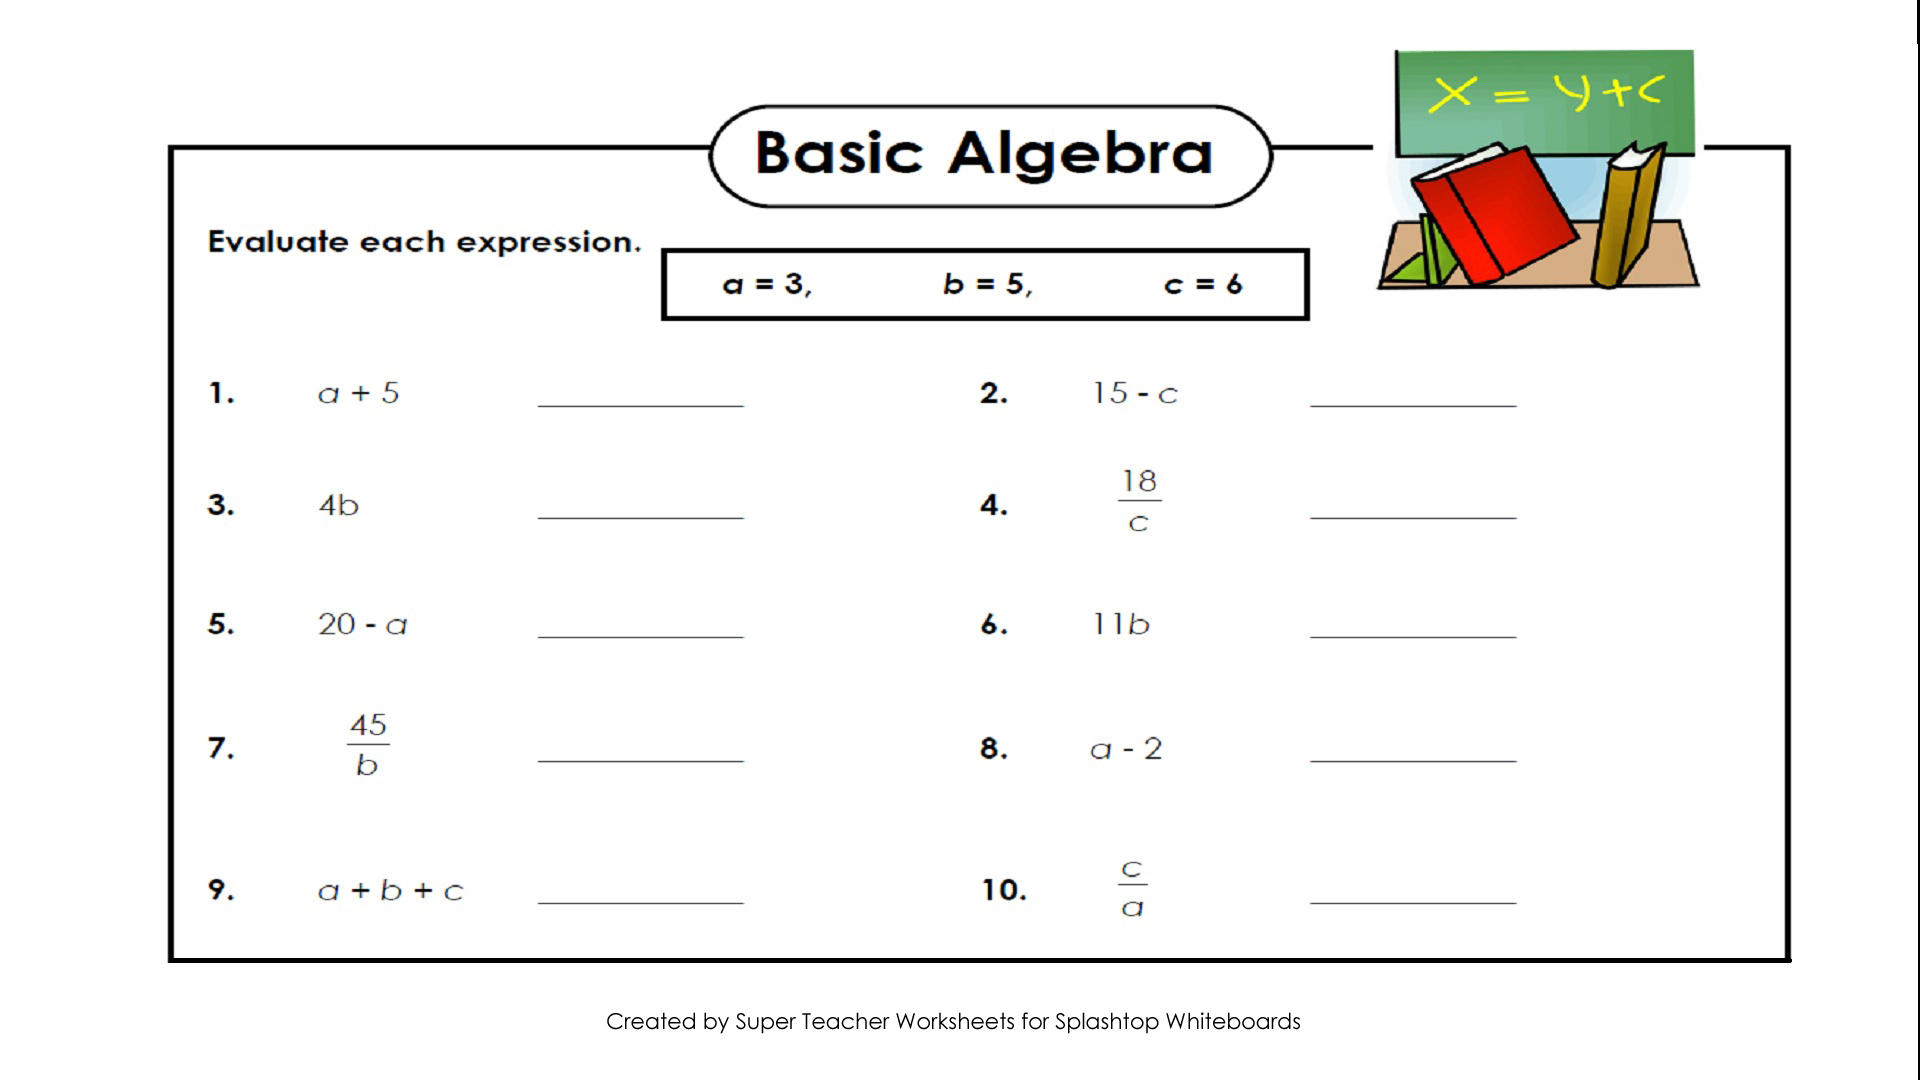 worksheet Evaluating Algebraic Expressions Worksheets worksheet 12241584 math algebra worksheets missing numbers in basic multiplying factors of quadratic expressions